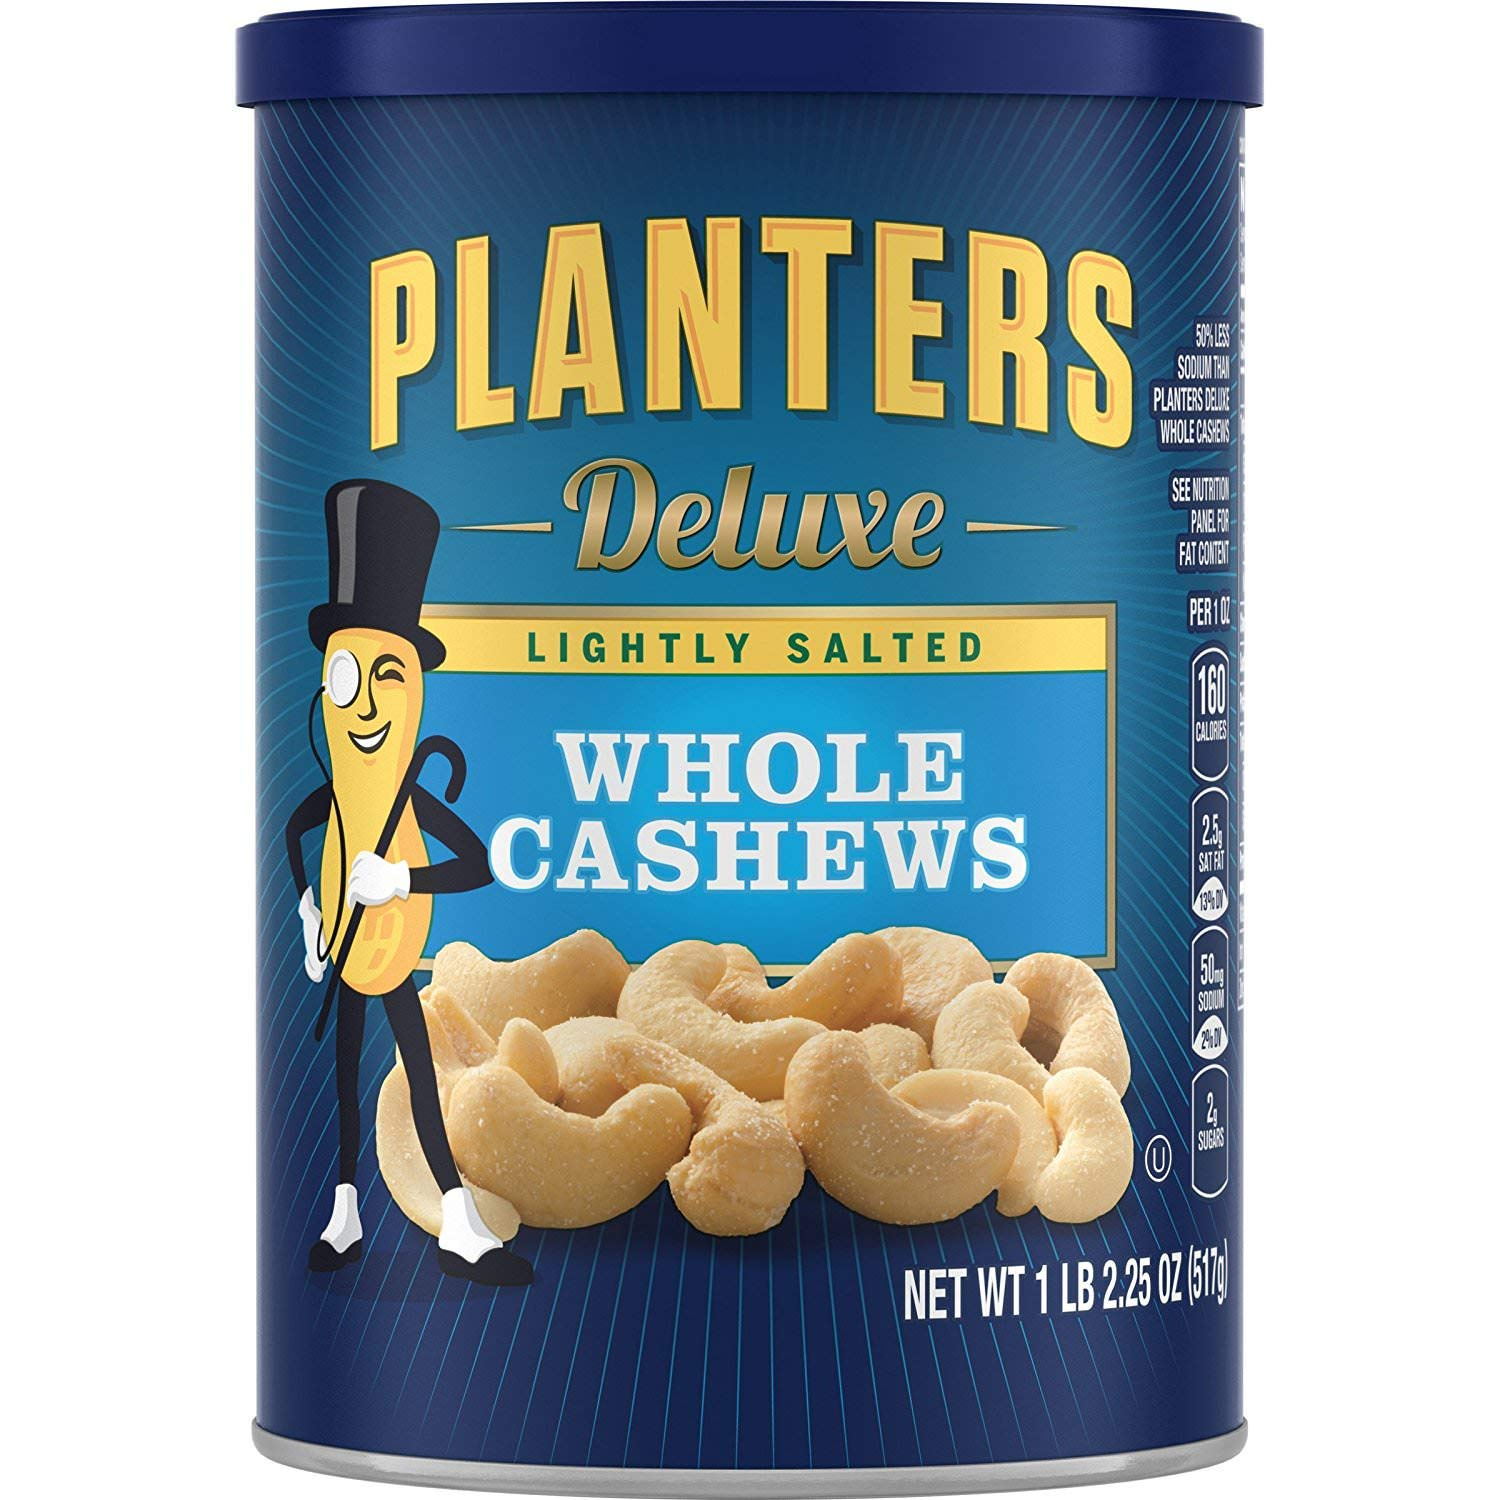 Planters Deluxe Whole Cashews Lightly Salted, 2 Tubs (1 lb 2.25 oz) by Planters (Image #1)